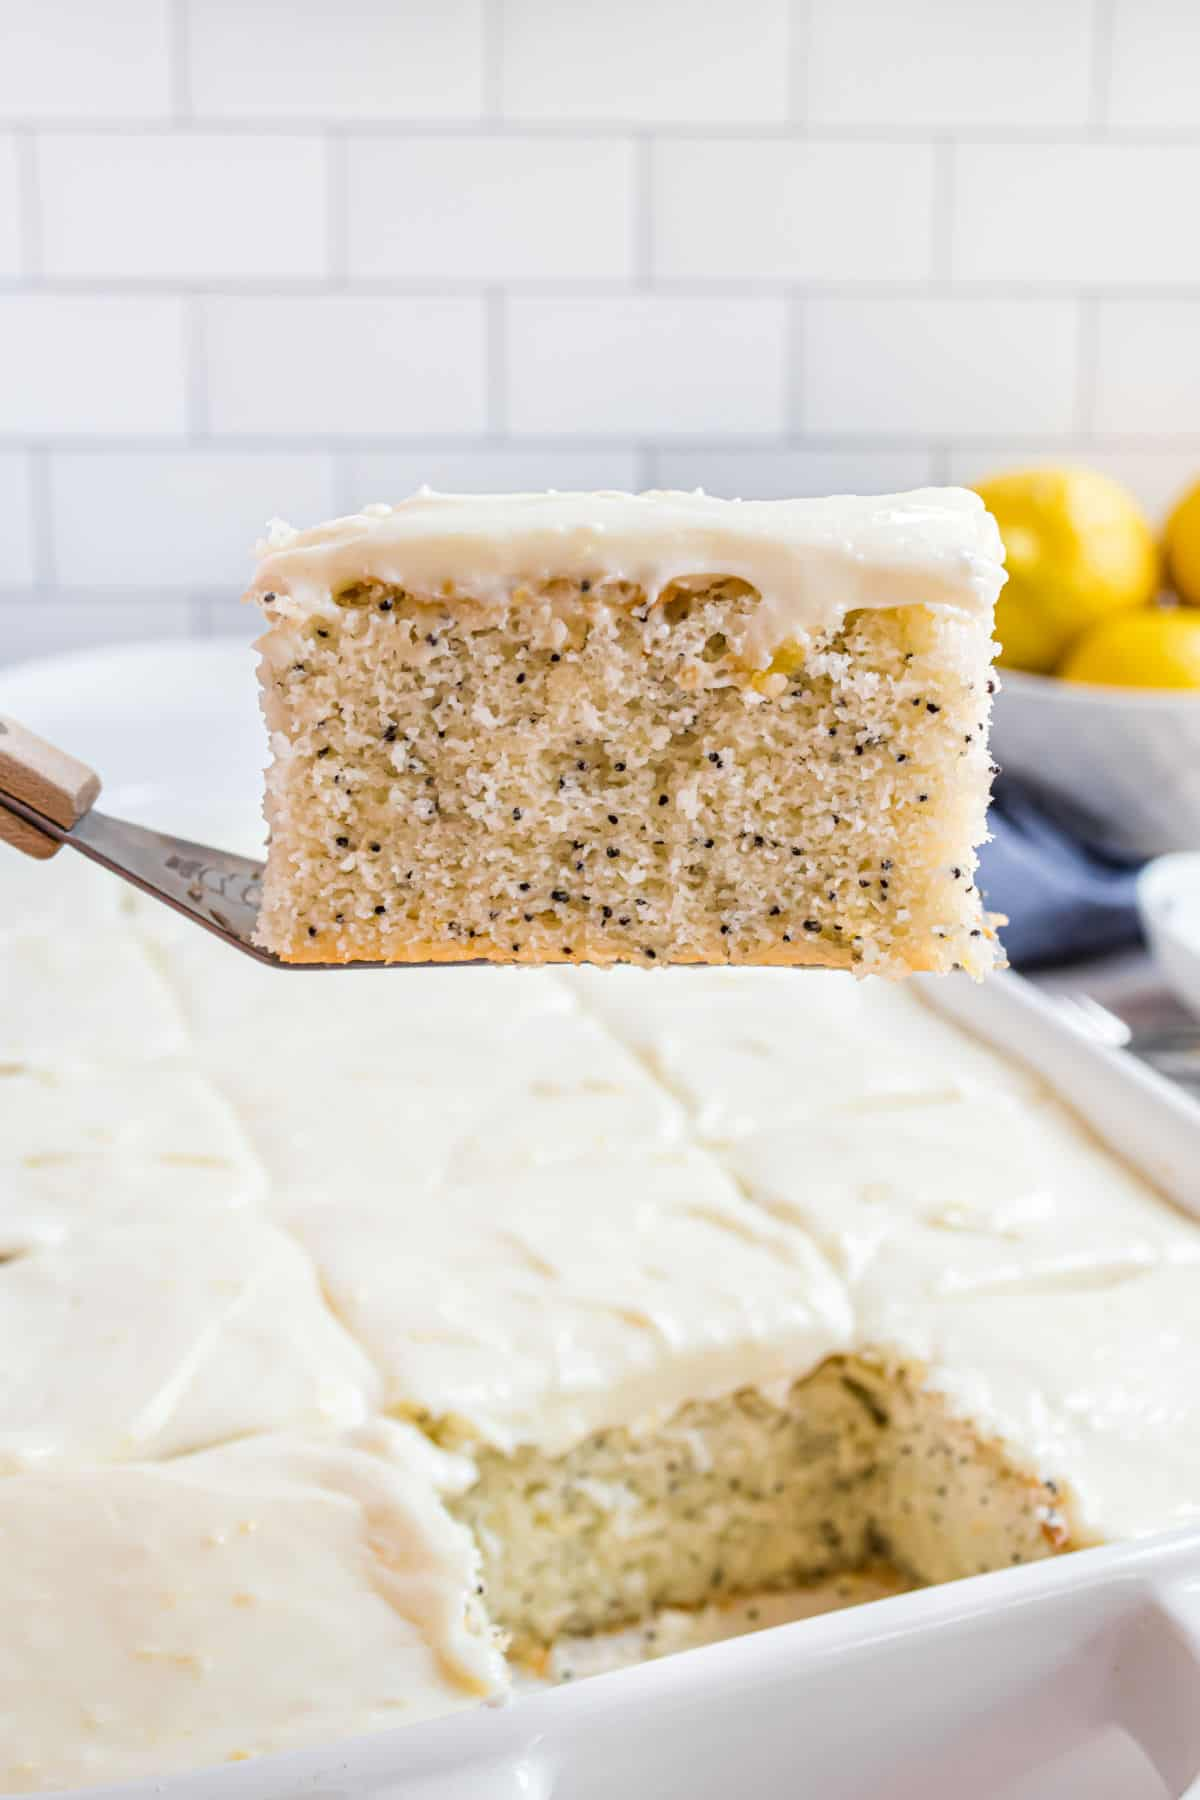 Slice of lemon poppyseed cake on spatula being lifted out of baking pan.